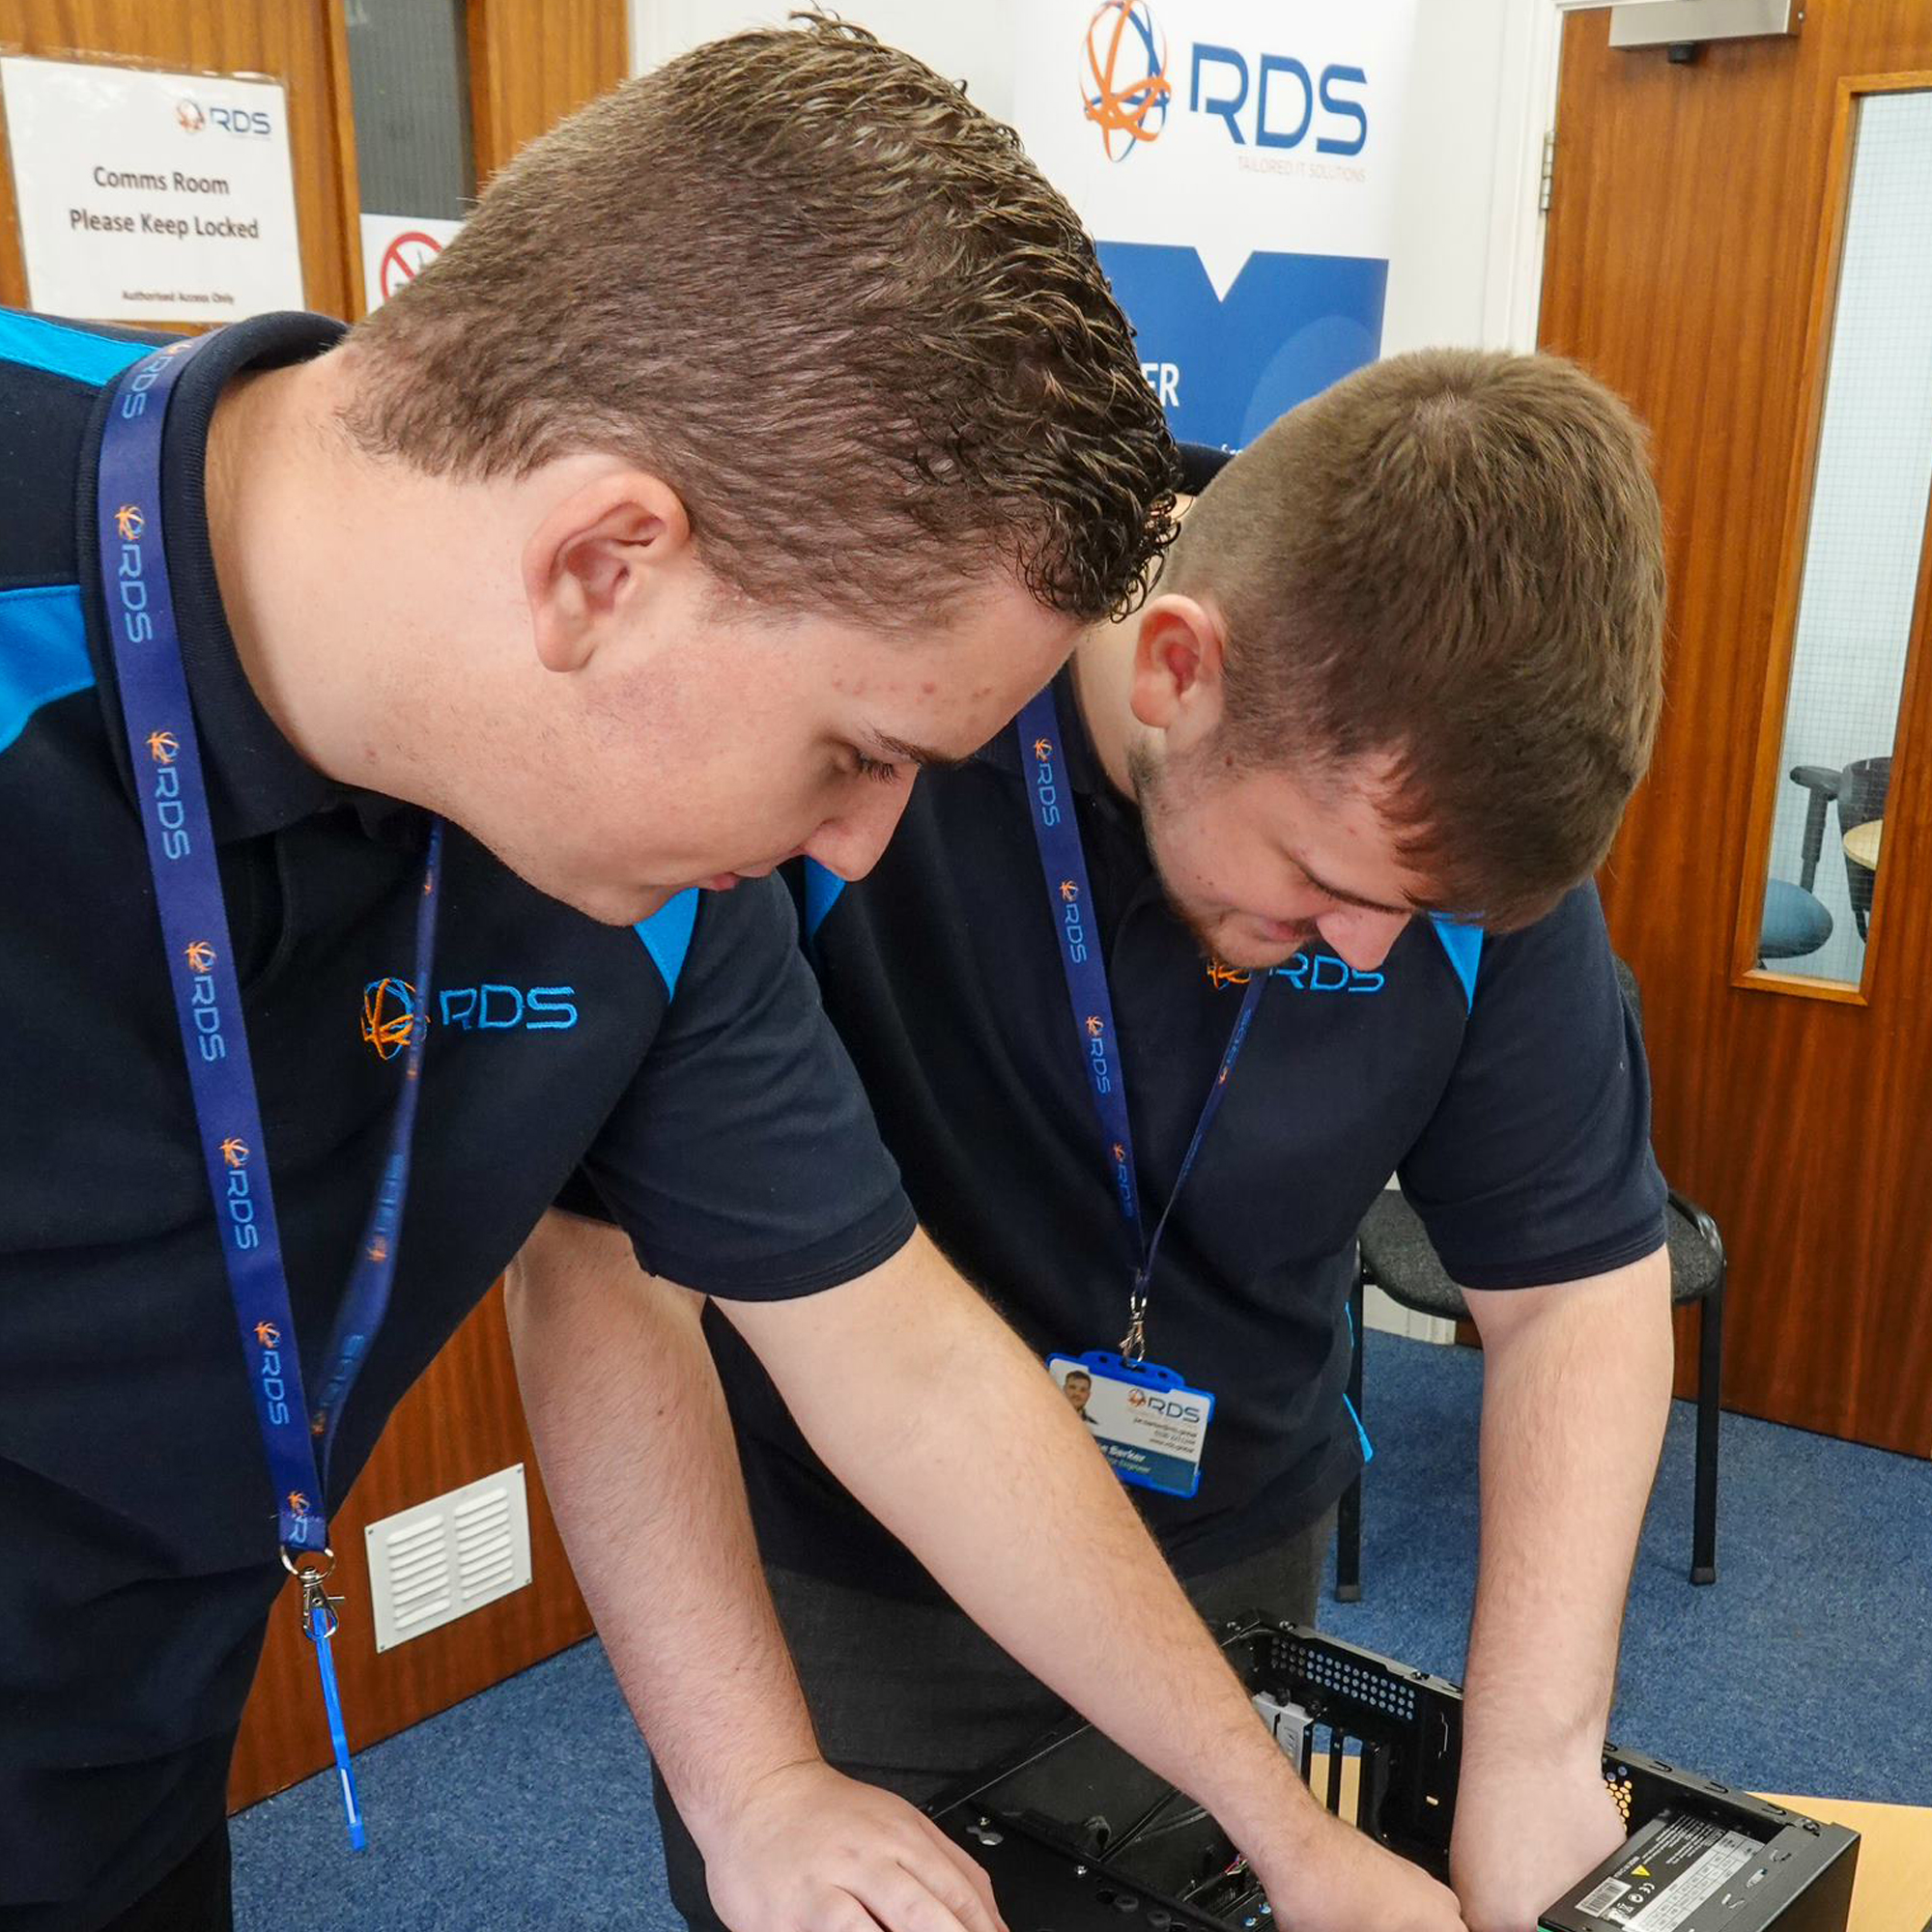 Two apprentices looking at piece of equipment in blue polo shirts